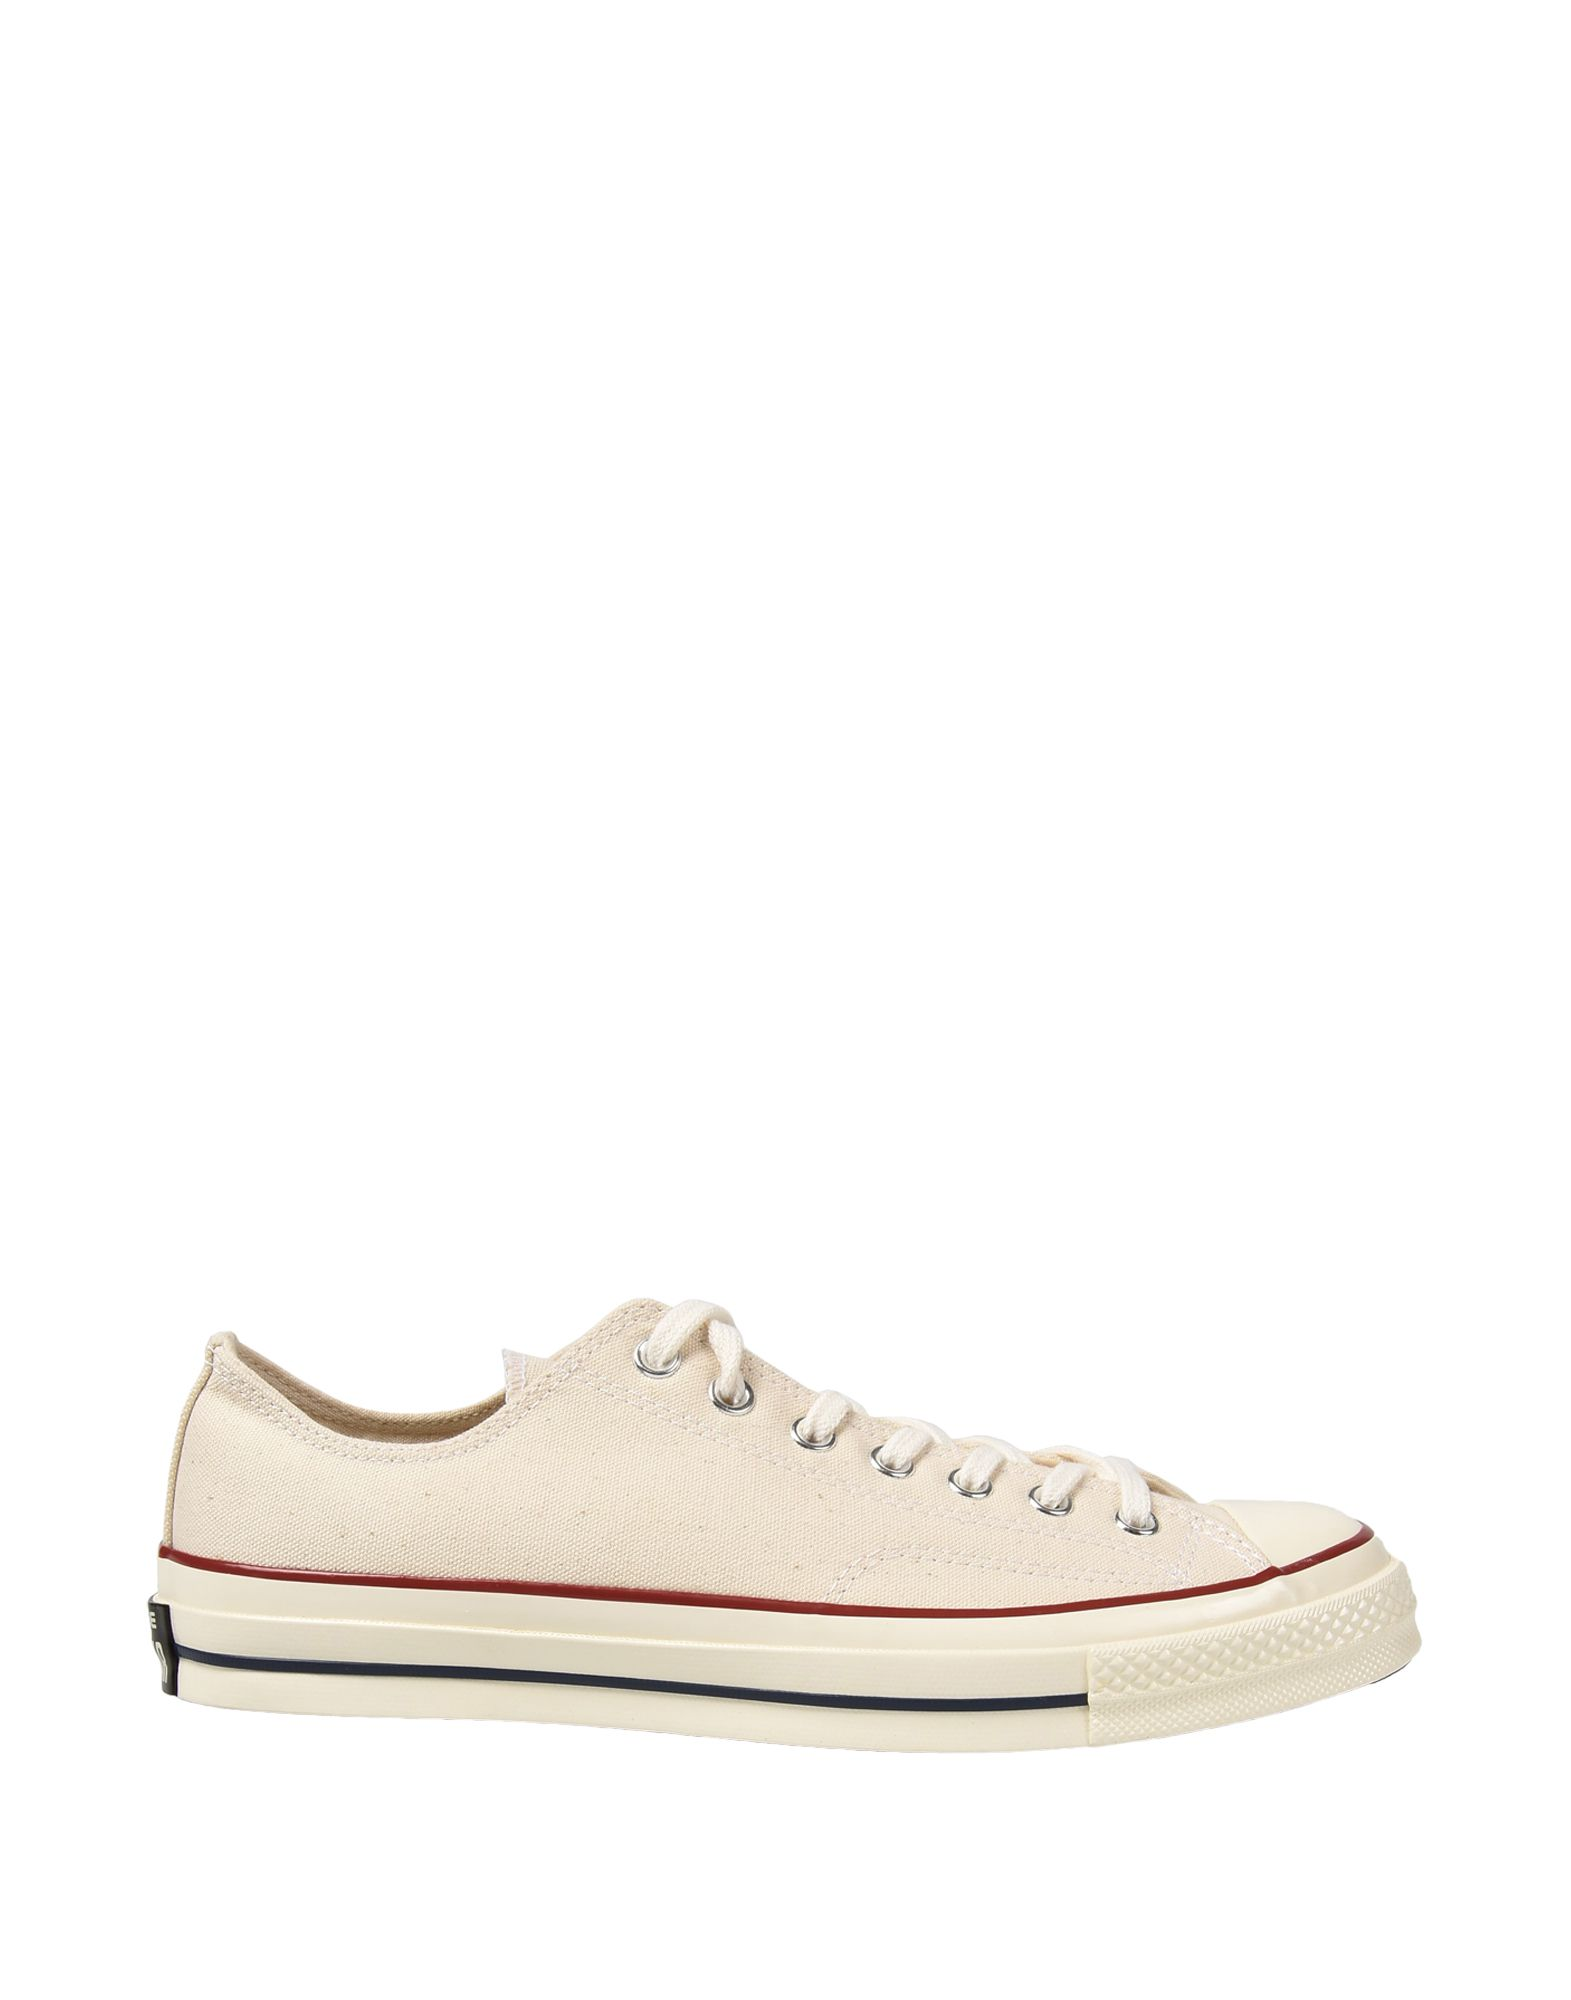 Sneakers Converse All Star Ct As Ox 70S Canvas - Femme - Sneakers Converse All Star sur